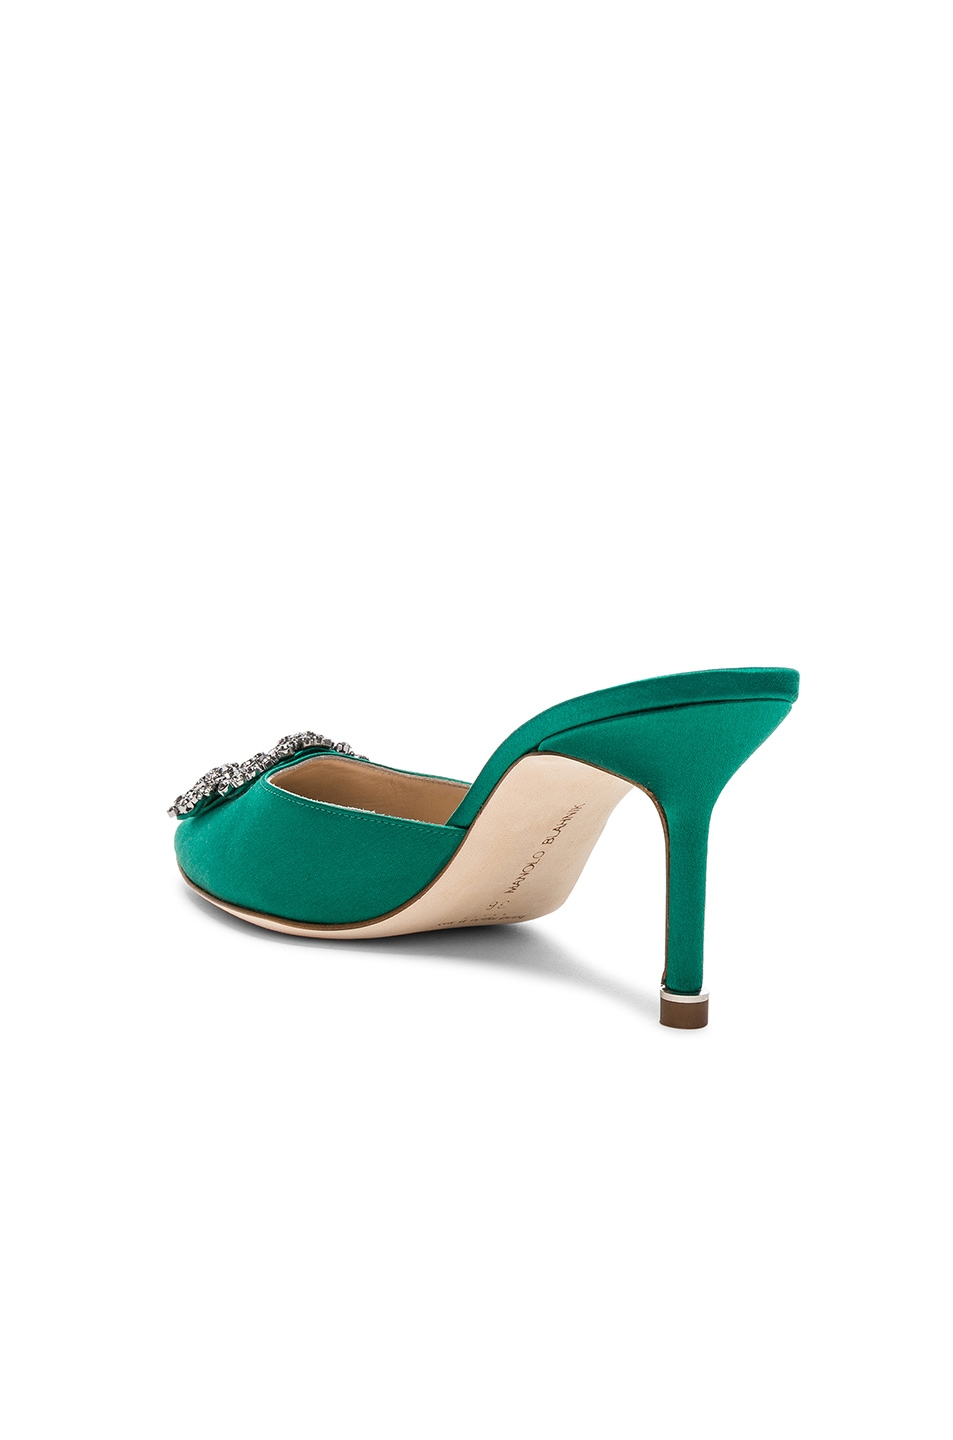 Image 3 of Manolo Blahnik Satin Hangisi 70 Mules in Green Satin